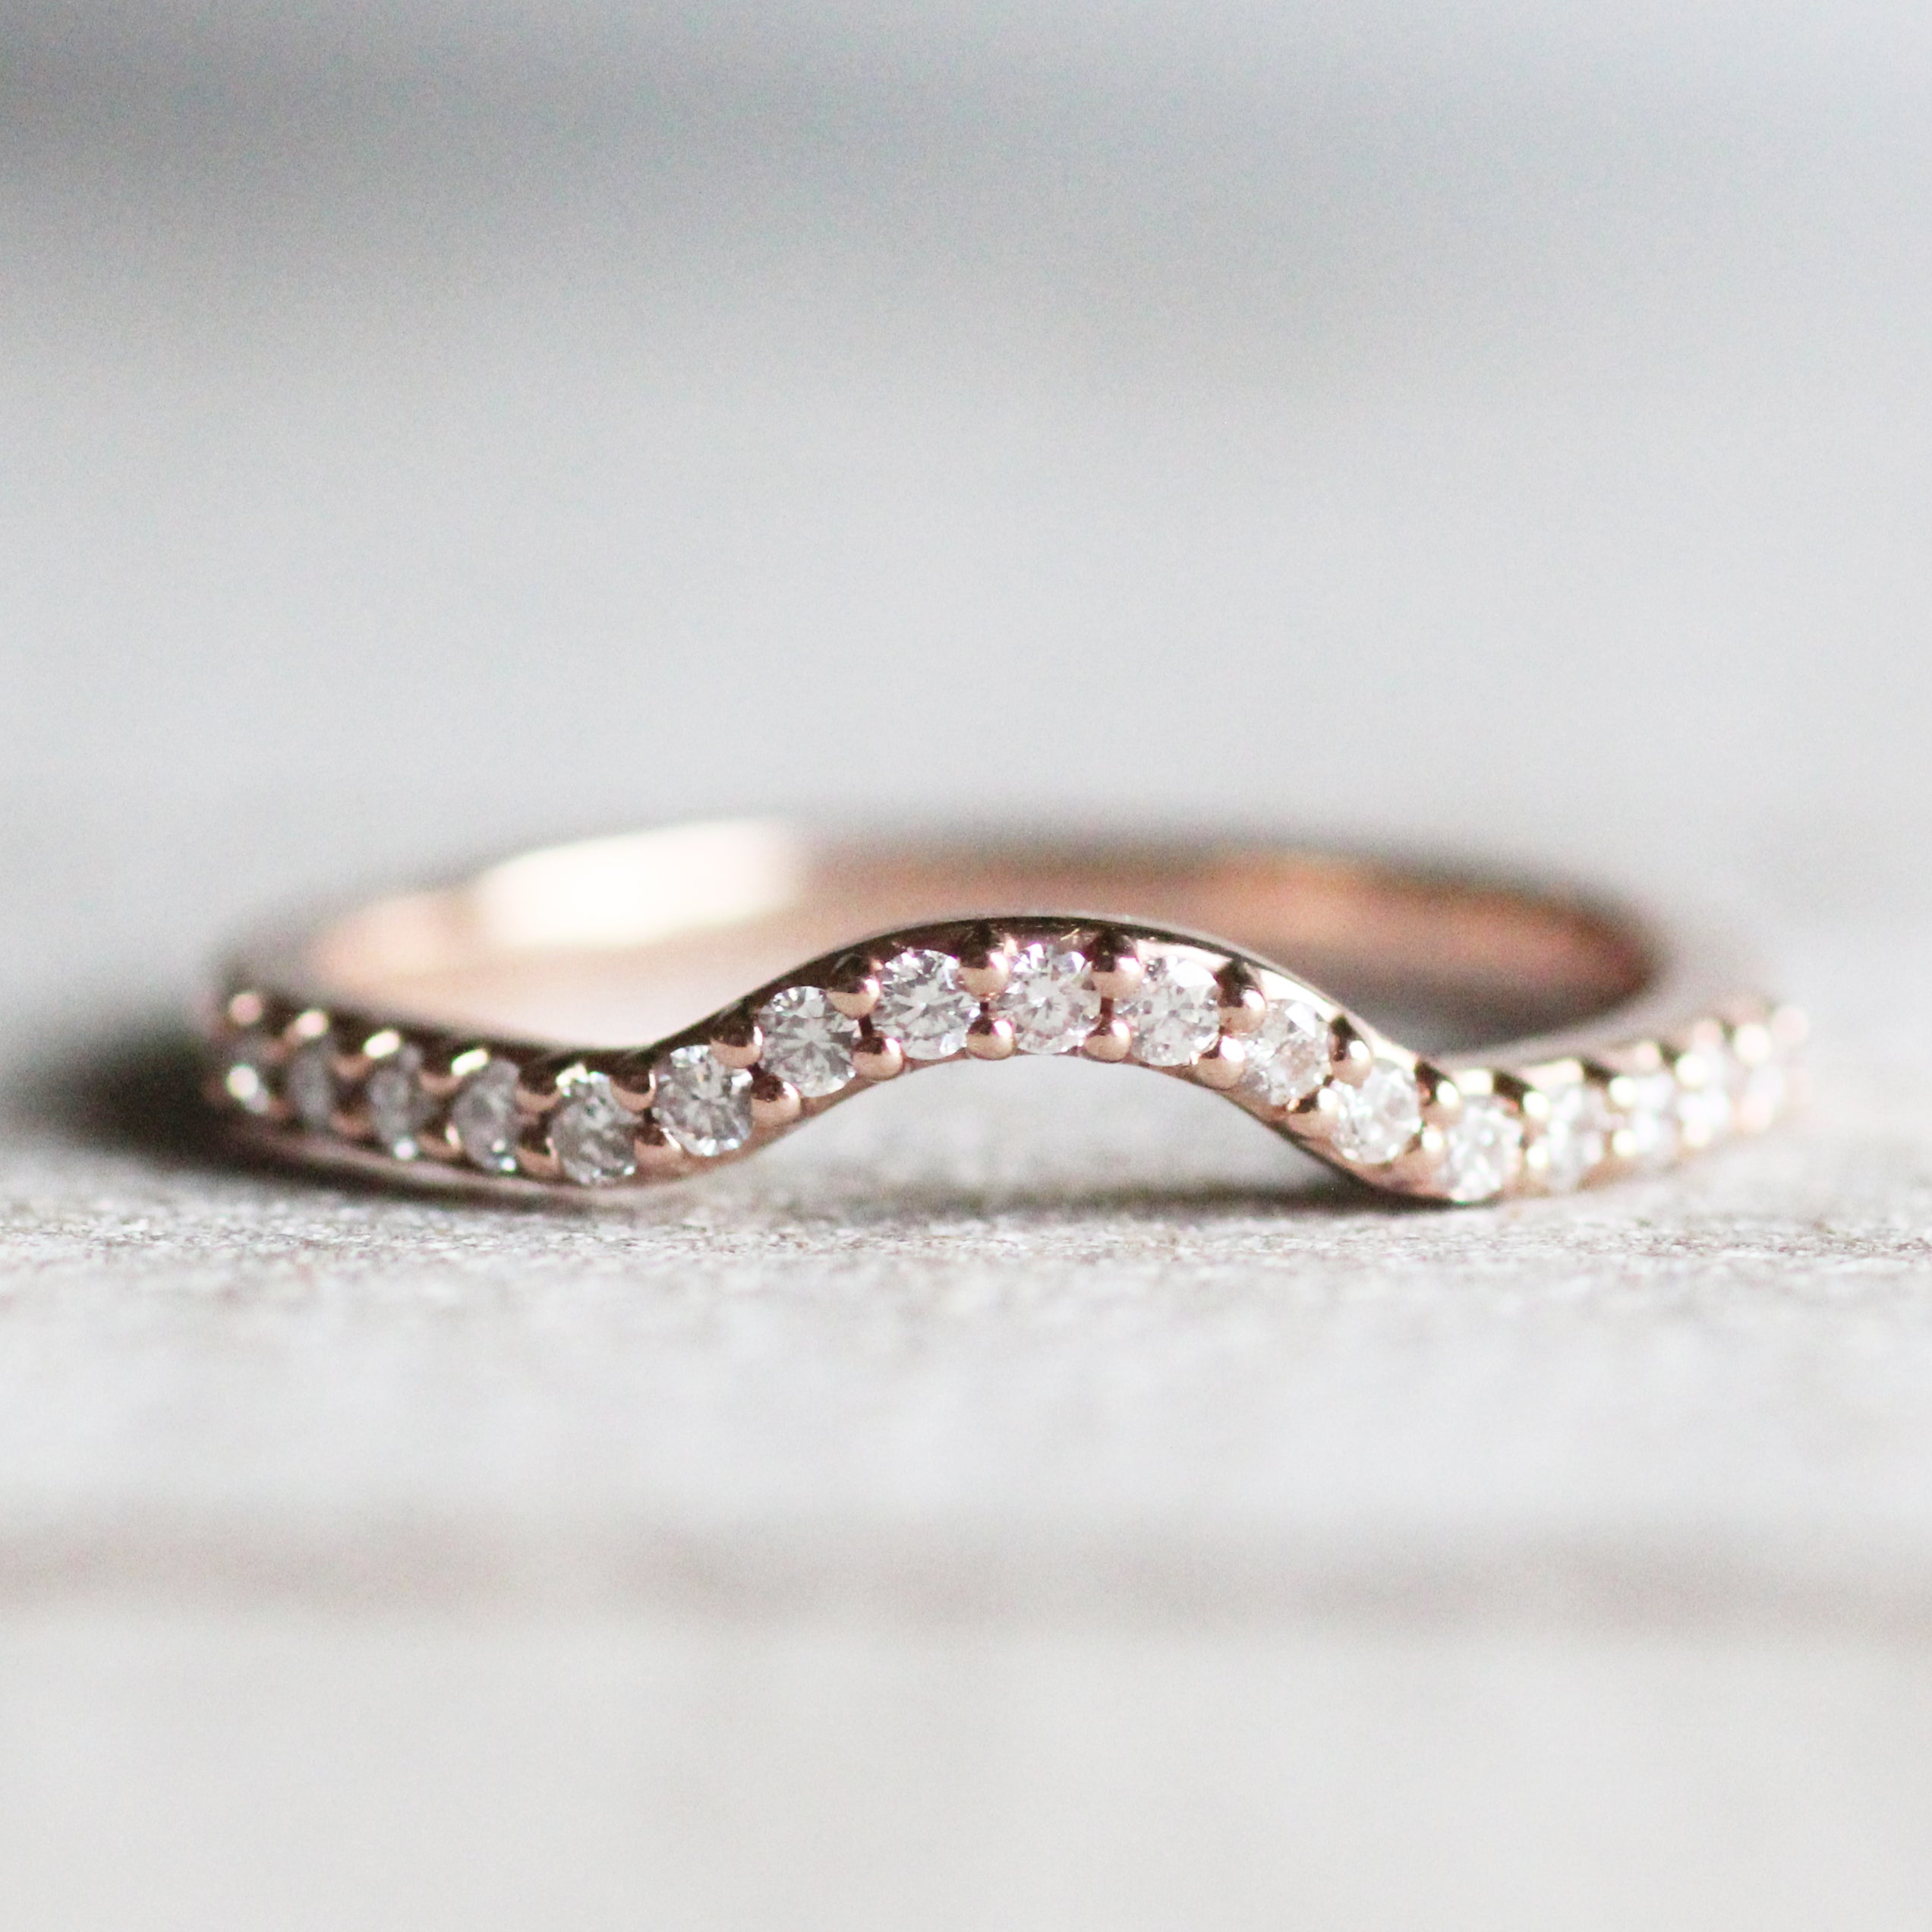 Walsh Wedding Band - Curved Contour Diamond Band - 14K Gold of Choice - Celestial Diamonds ® by Midwinter Co.